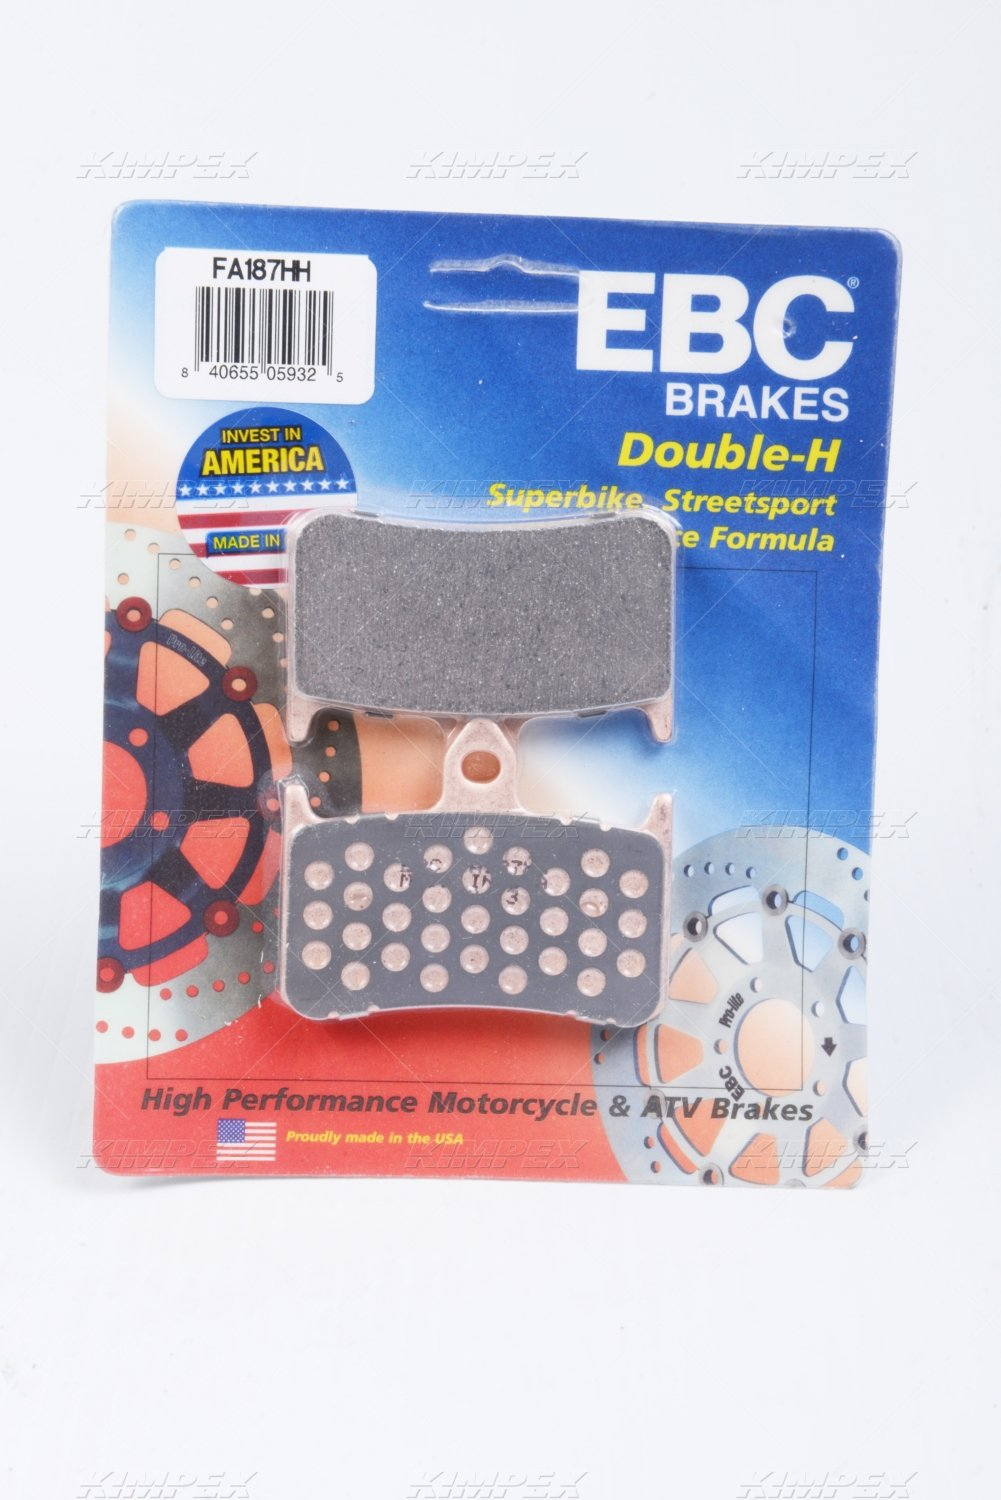 Auto Parts and Vehicles Honda CB 900 Hornet 02-07 EBC Organic Front Brake Pads Other Motorcycle Parts FA187